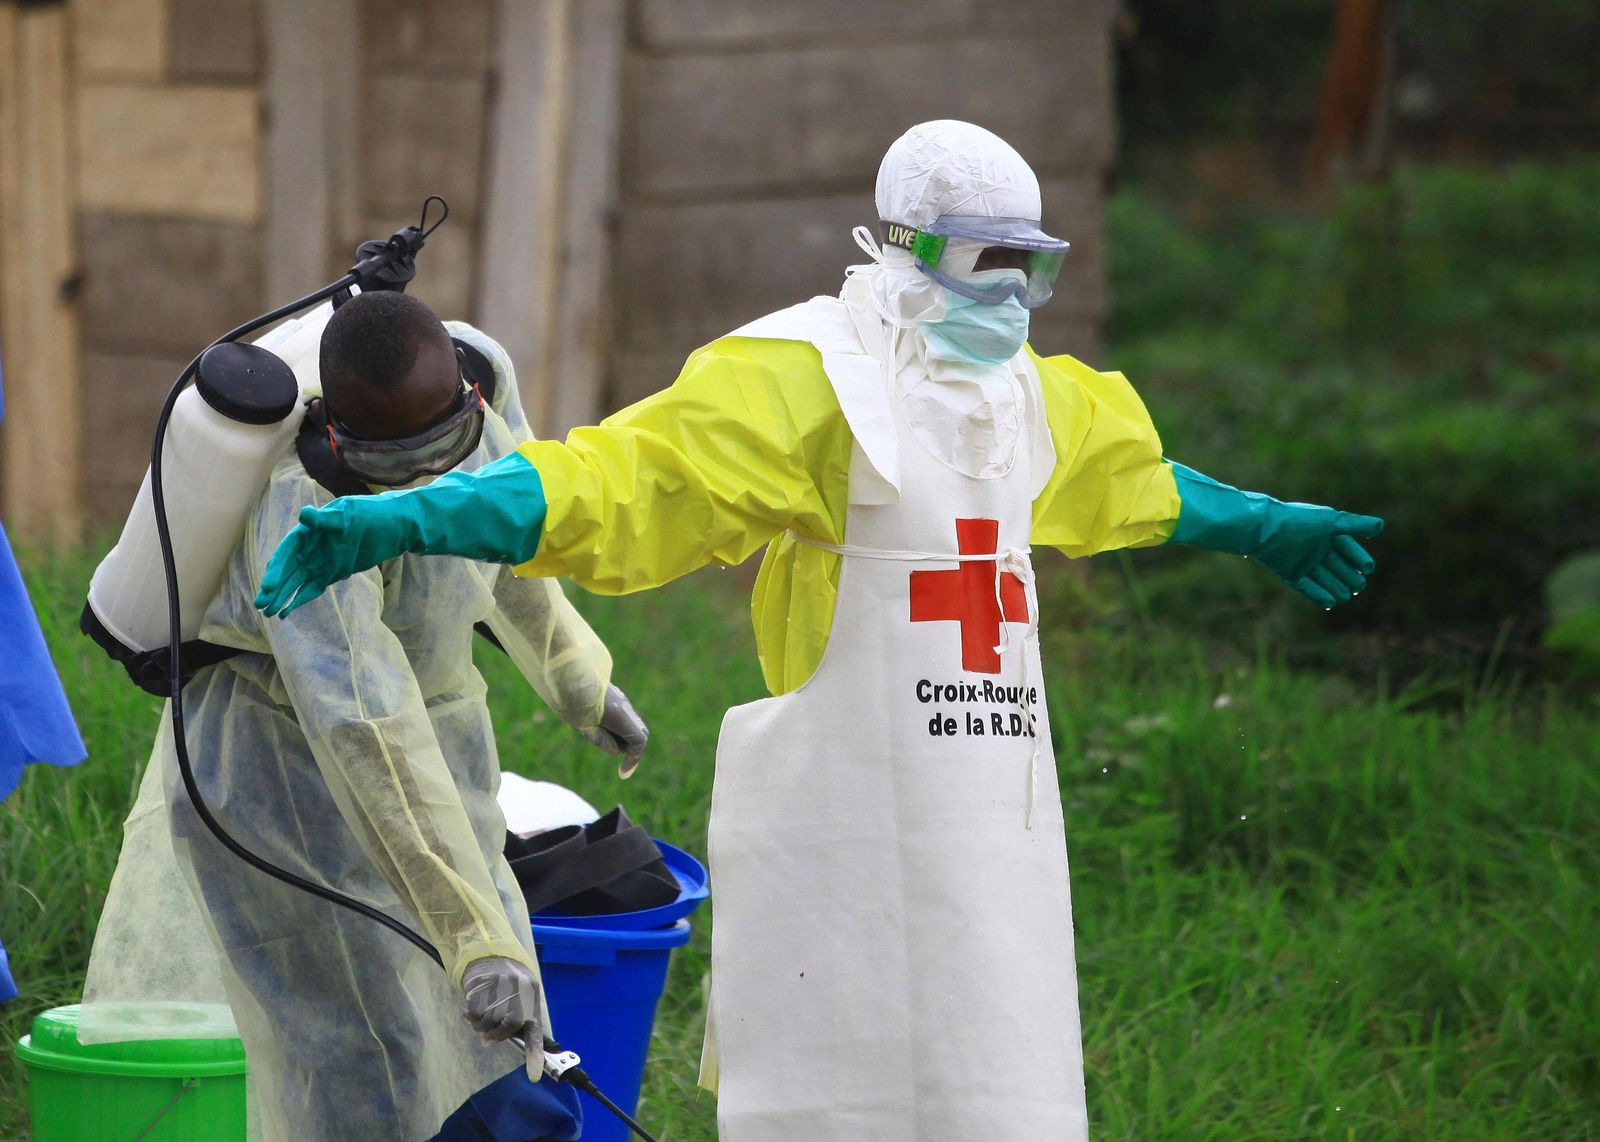 FILE - In this Sunday, Sept 9, 2018 file photo, a health worker sprays disinfectant on his colleague after working at an Ebola treatment centre in Beni, Eastern Congo. (AP Photo/Al-hadji Kudra Maliro, FILE)